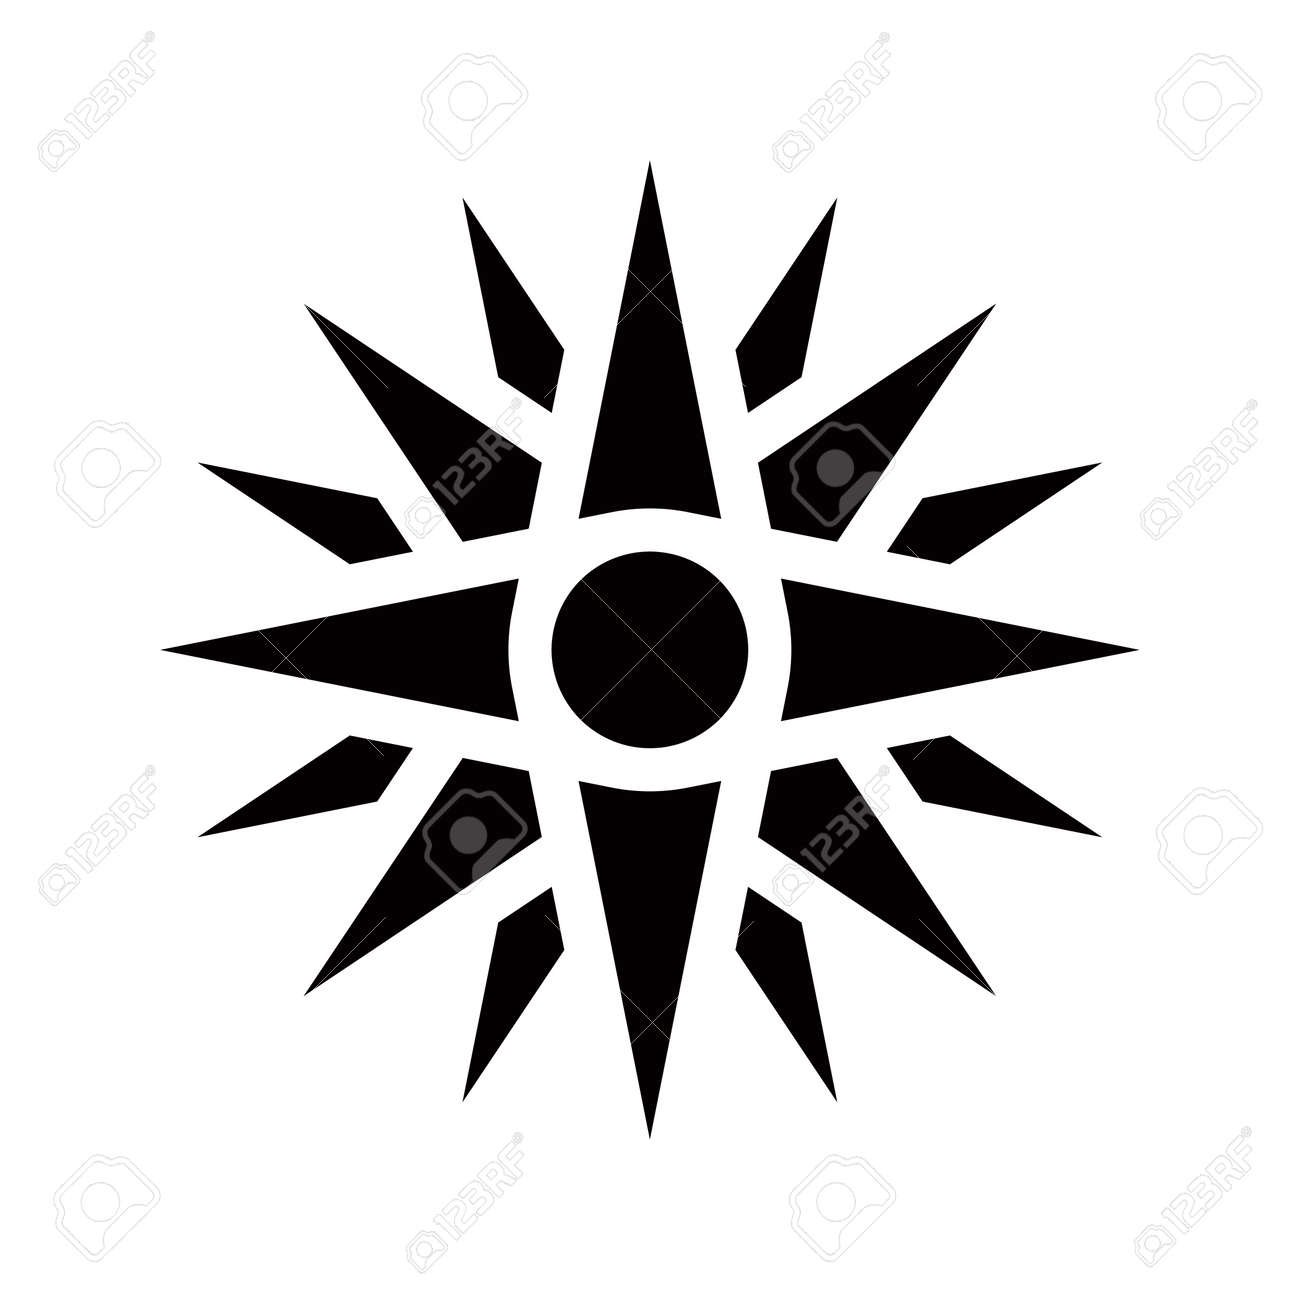 Graphical representation of an ancient greek symbol vergina graphical representation of an ancient greek symbol vergina star stock photo 16034619 biocorpaavc